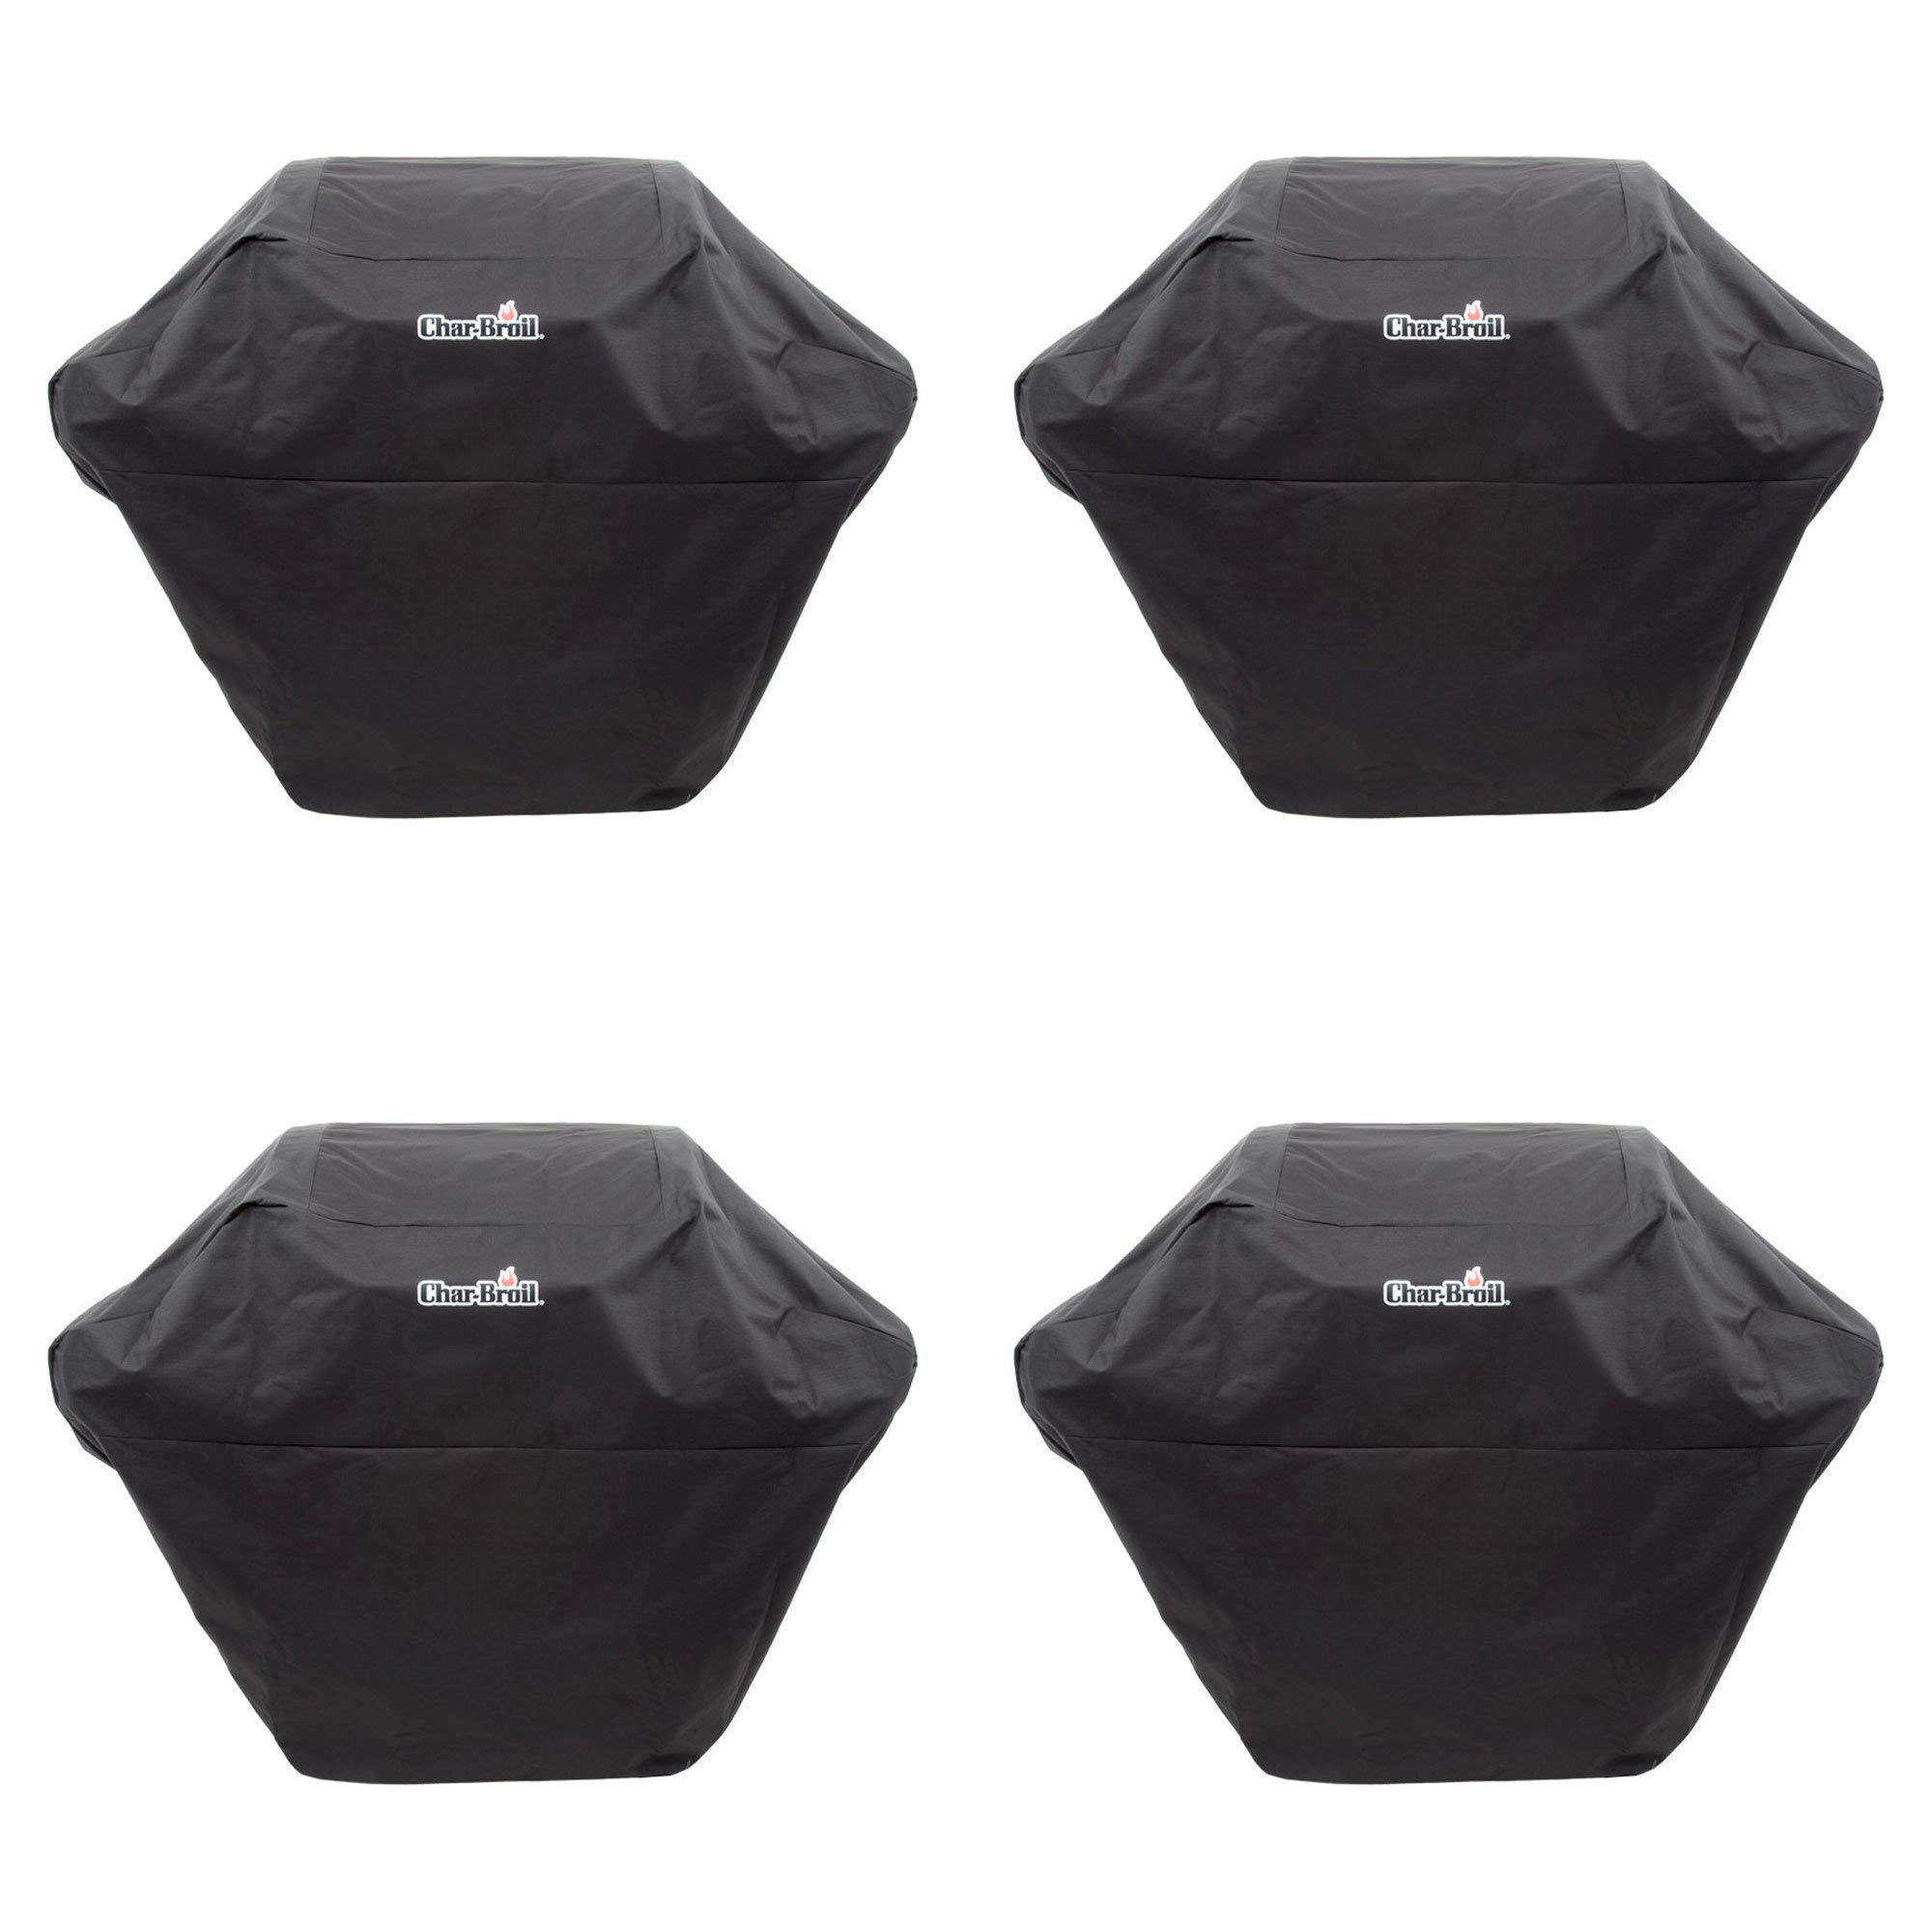 Char-Broil Rip Stop 2-3 Burner Medium Heavy Duty Polyester Grill Cover | 2936759 (4 Pack)